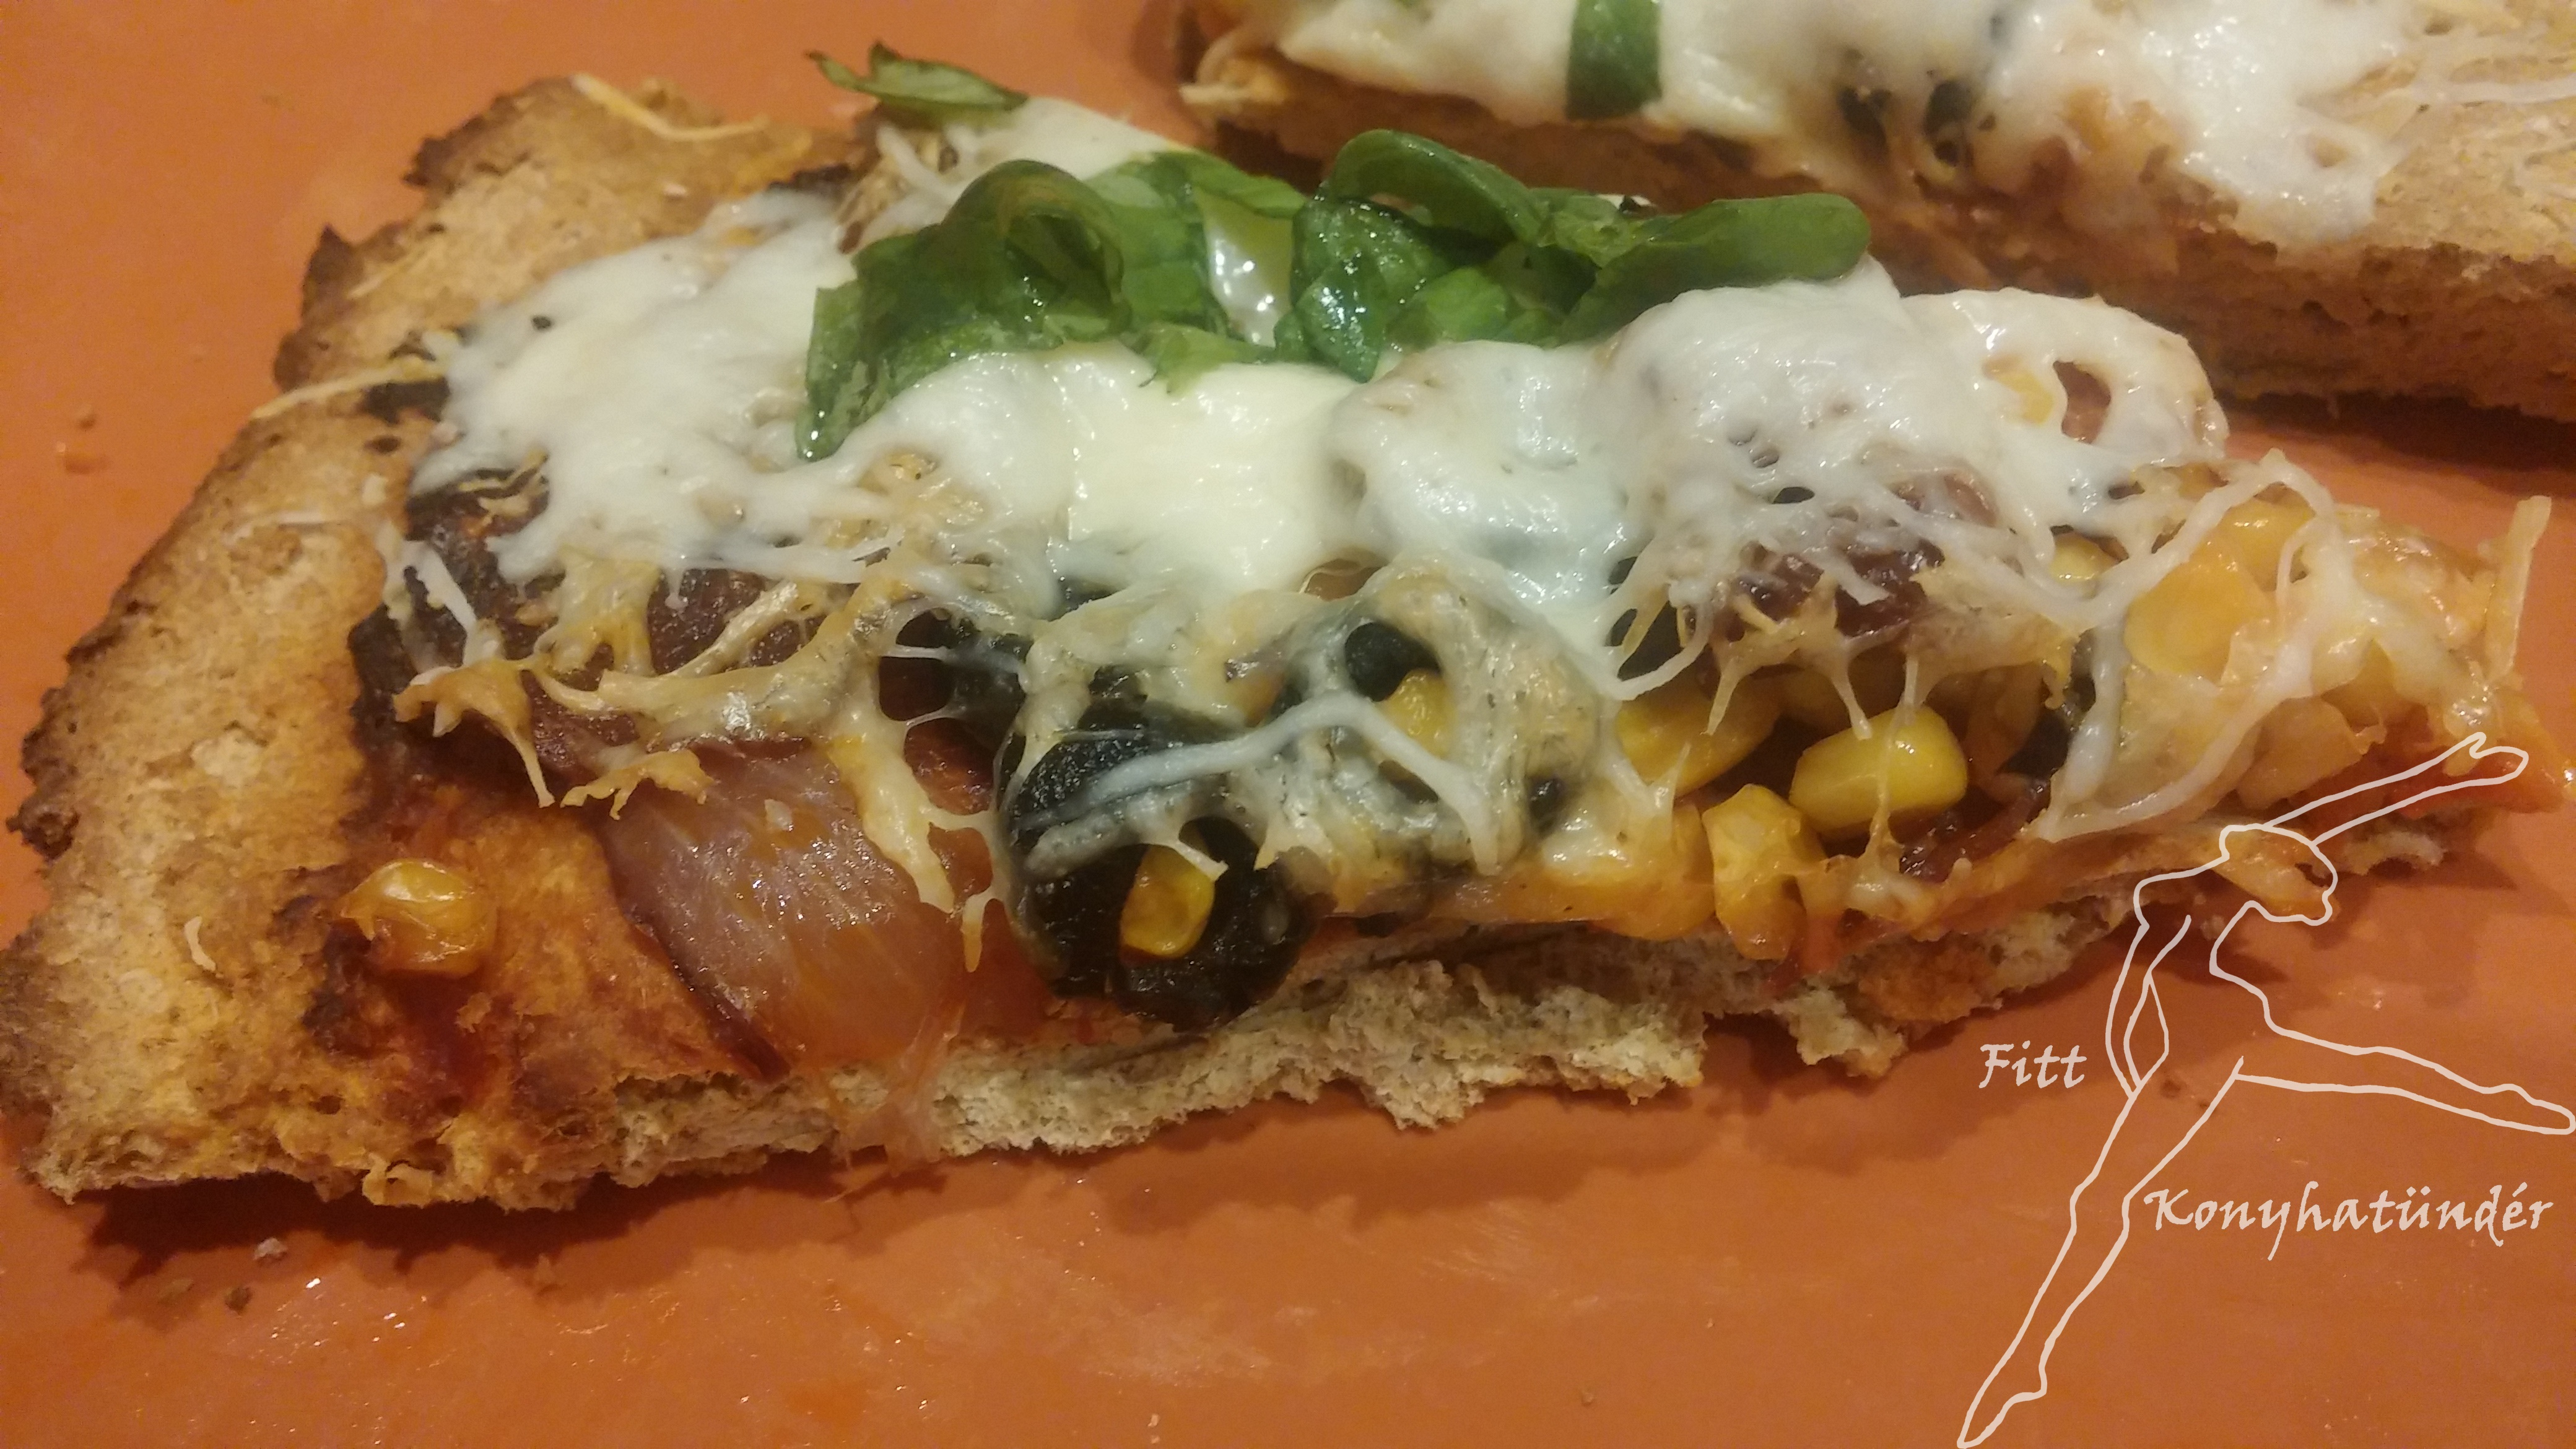 GM, LowCarb pizza